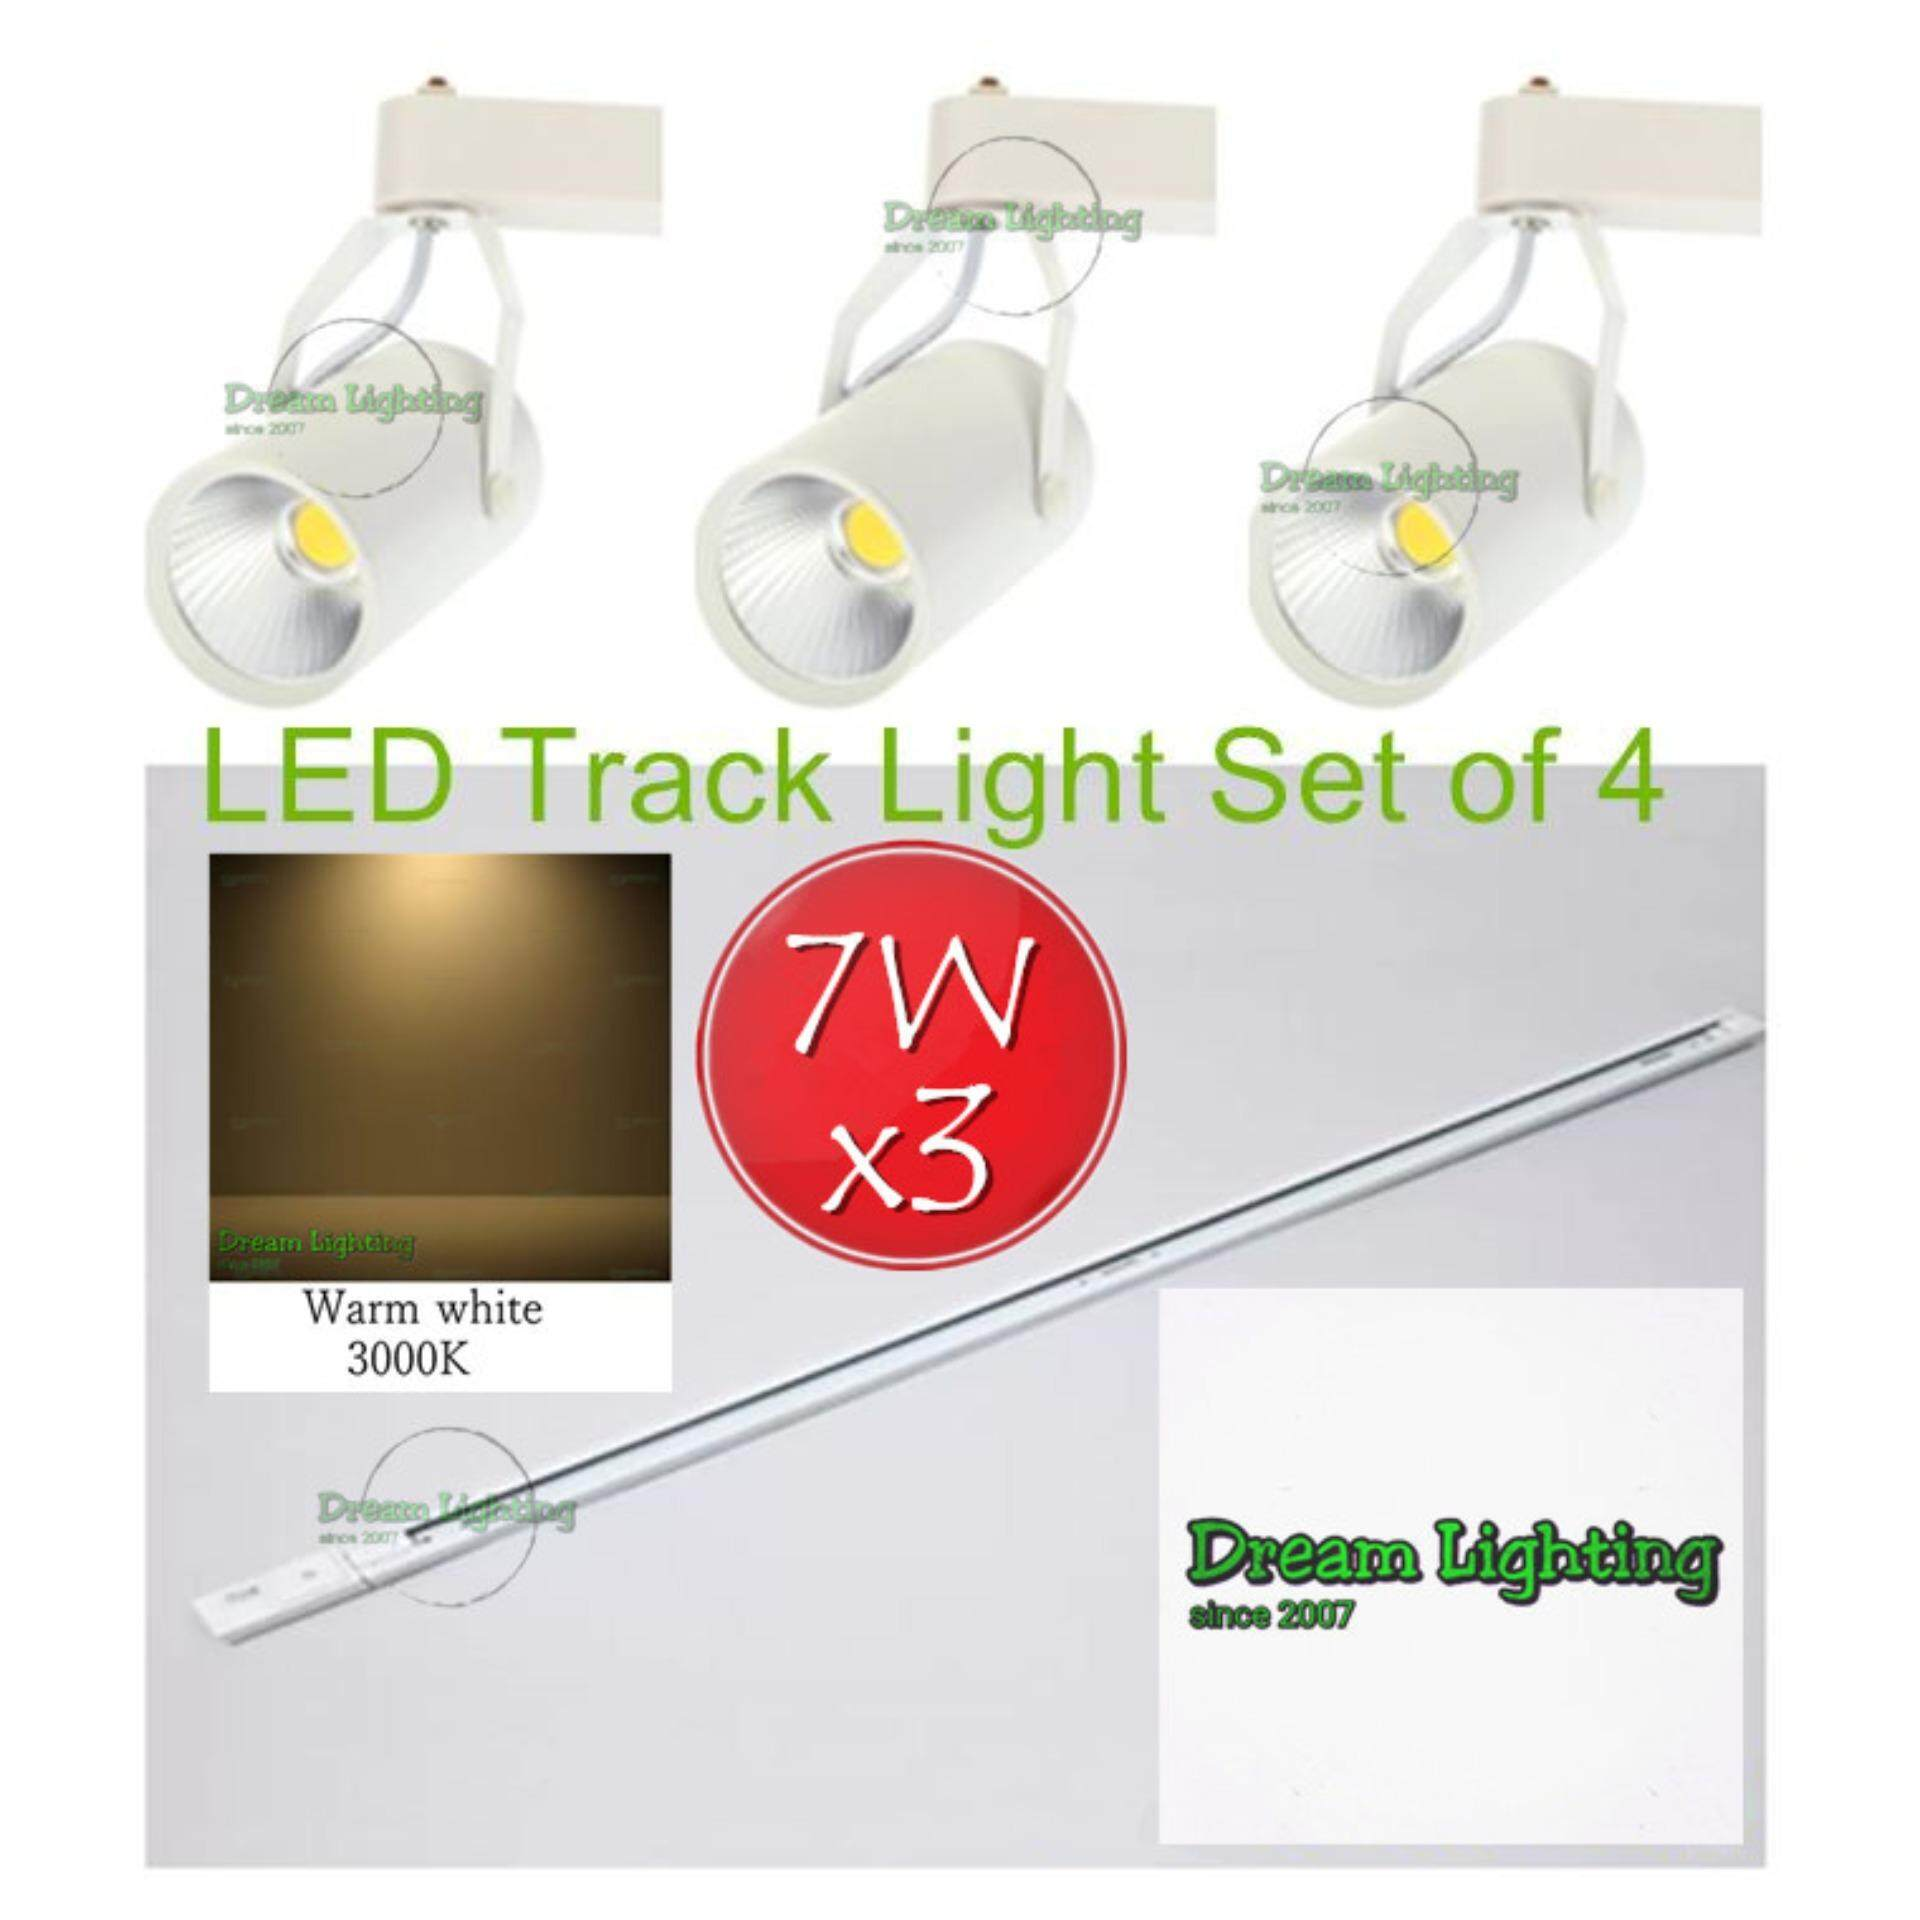 Home Ceiling Lights Buy At Best Price In Online Wholesale Led Strobe Circuit From China Dream Lighting Set Of 4 1 Meter Track Rail With 3 Light